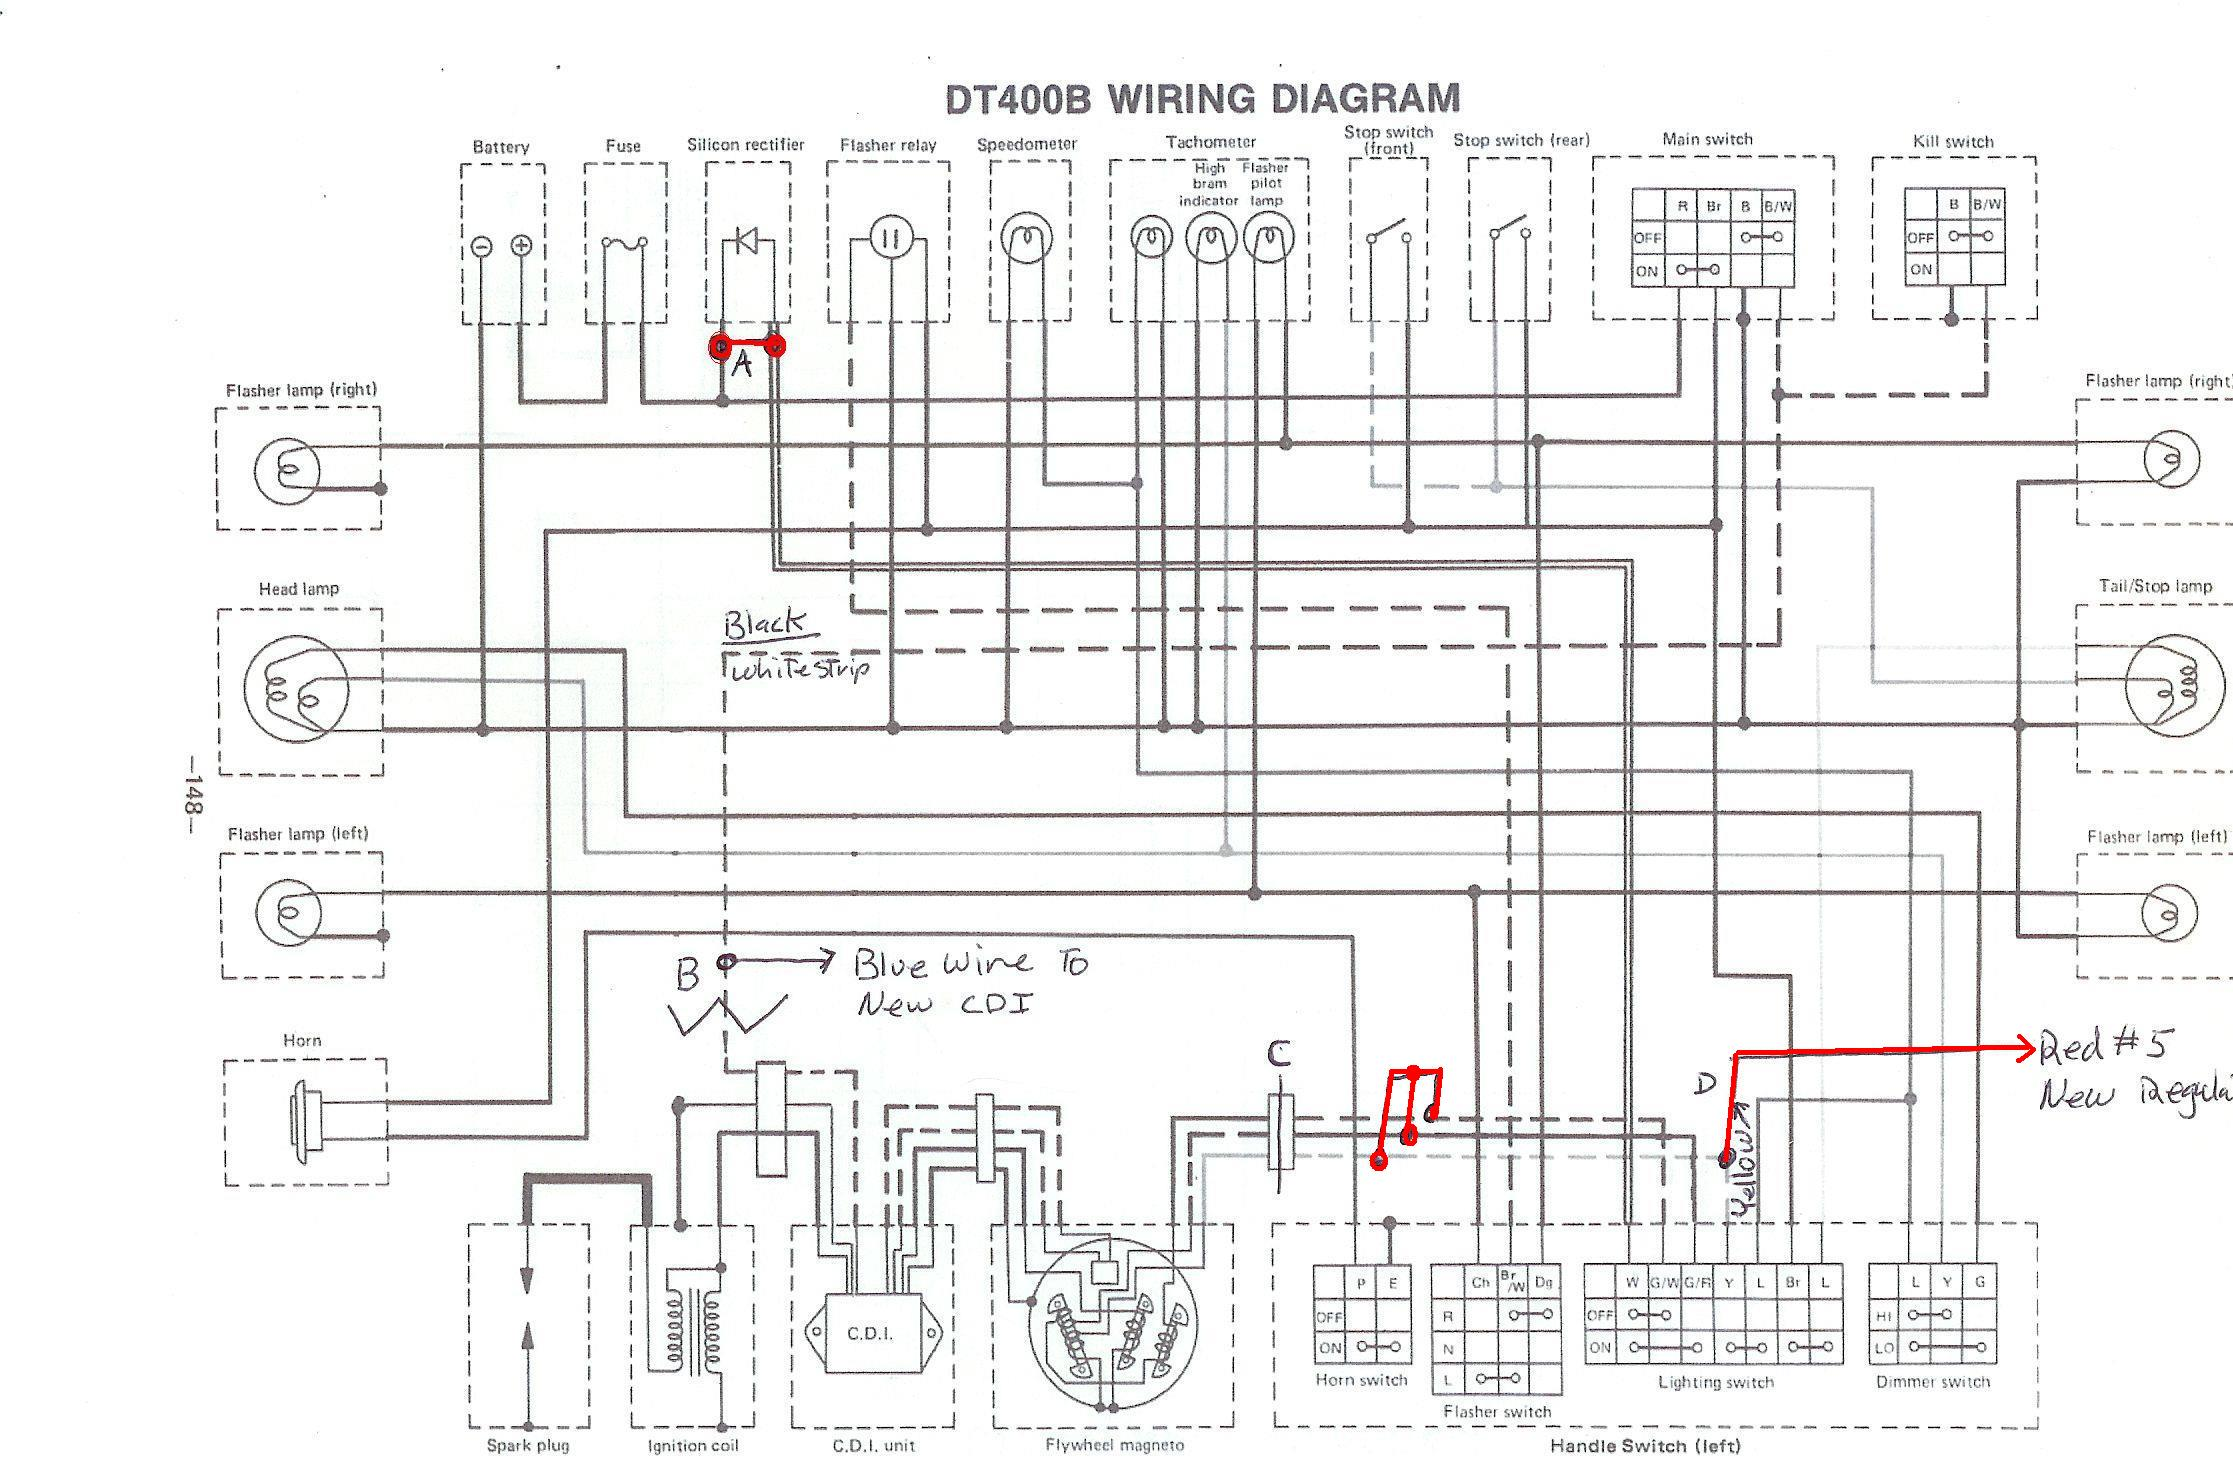 yamaha dt400 wiring diagram wire center u2022 rh sischool co yamaha dt 50 r wiring diagram yamaha dt 50 lc wiring diagram